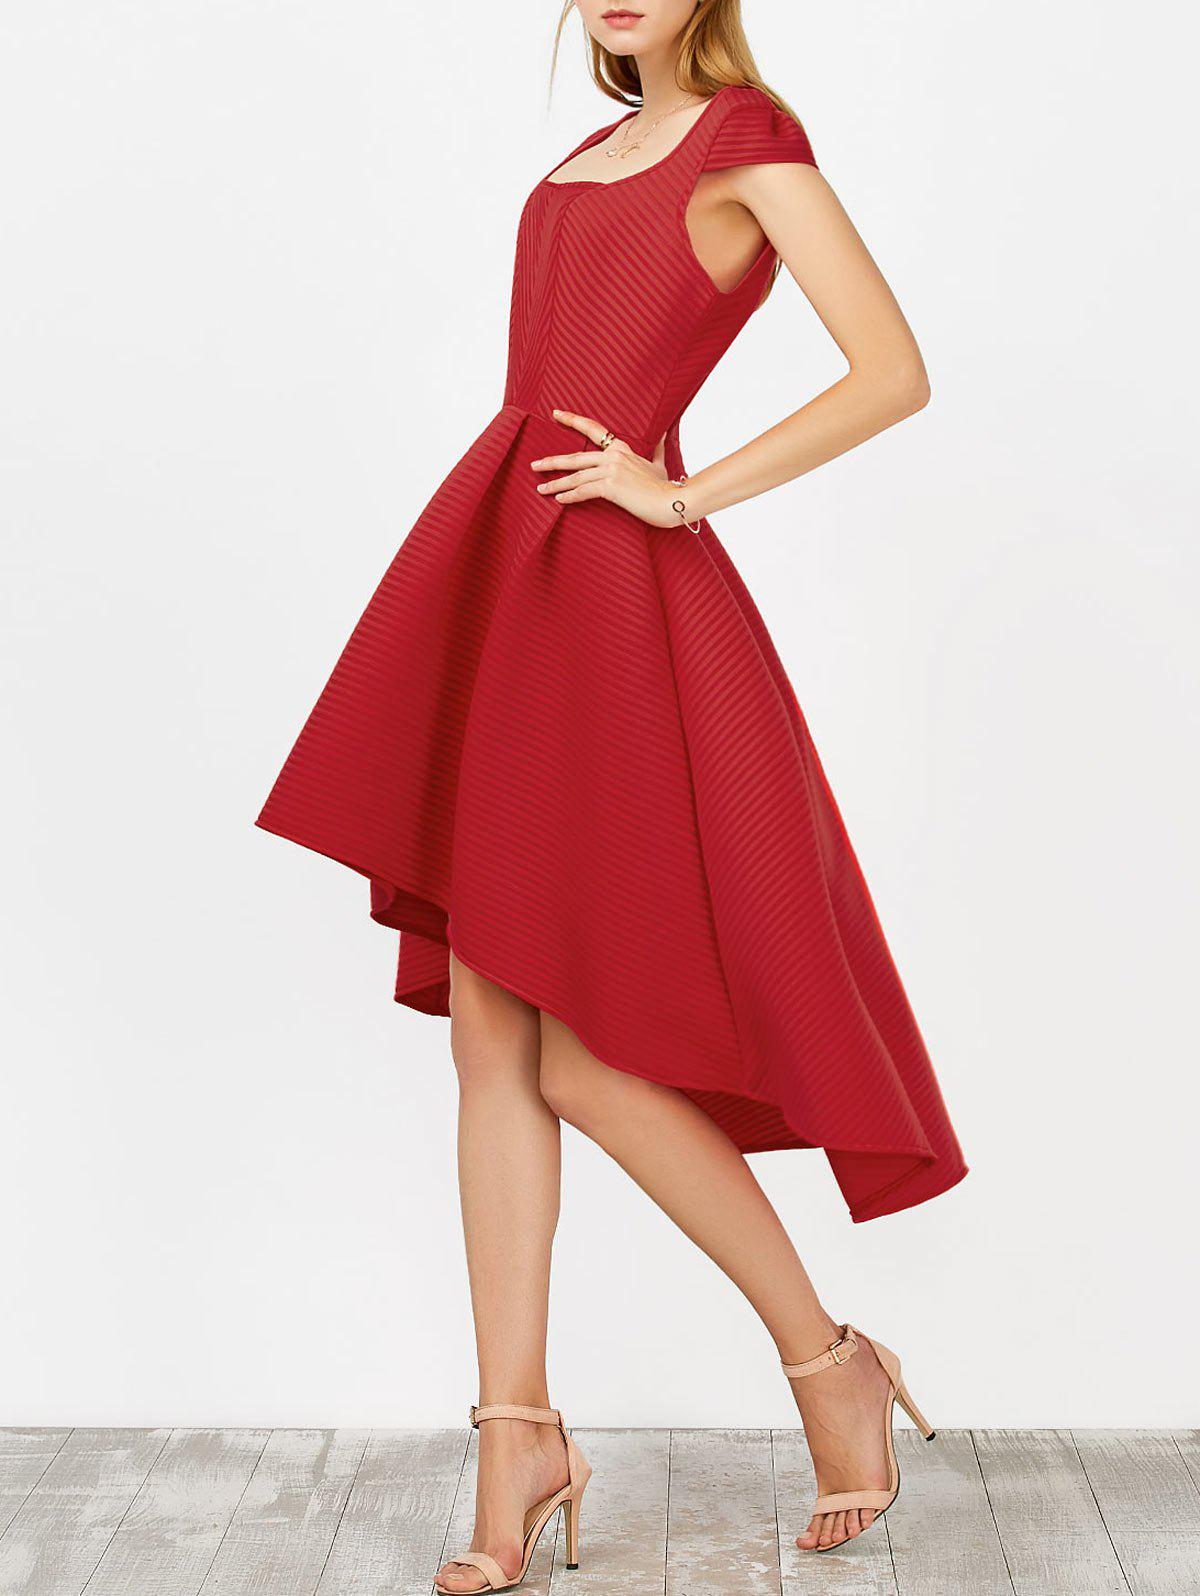 2018 High Low Tea Length Wedding Guest Dress In Red L | Rosegal.com